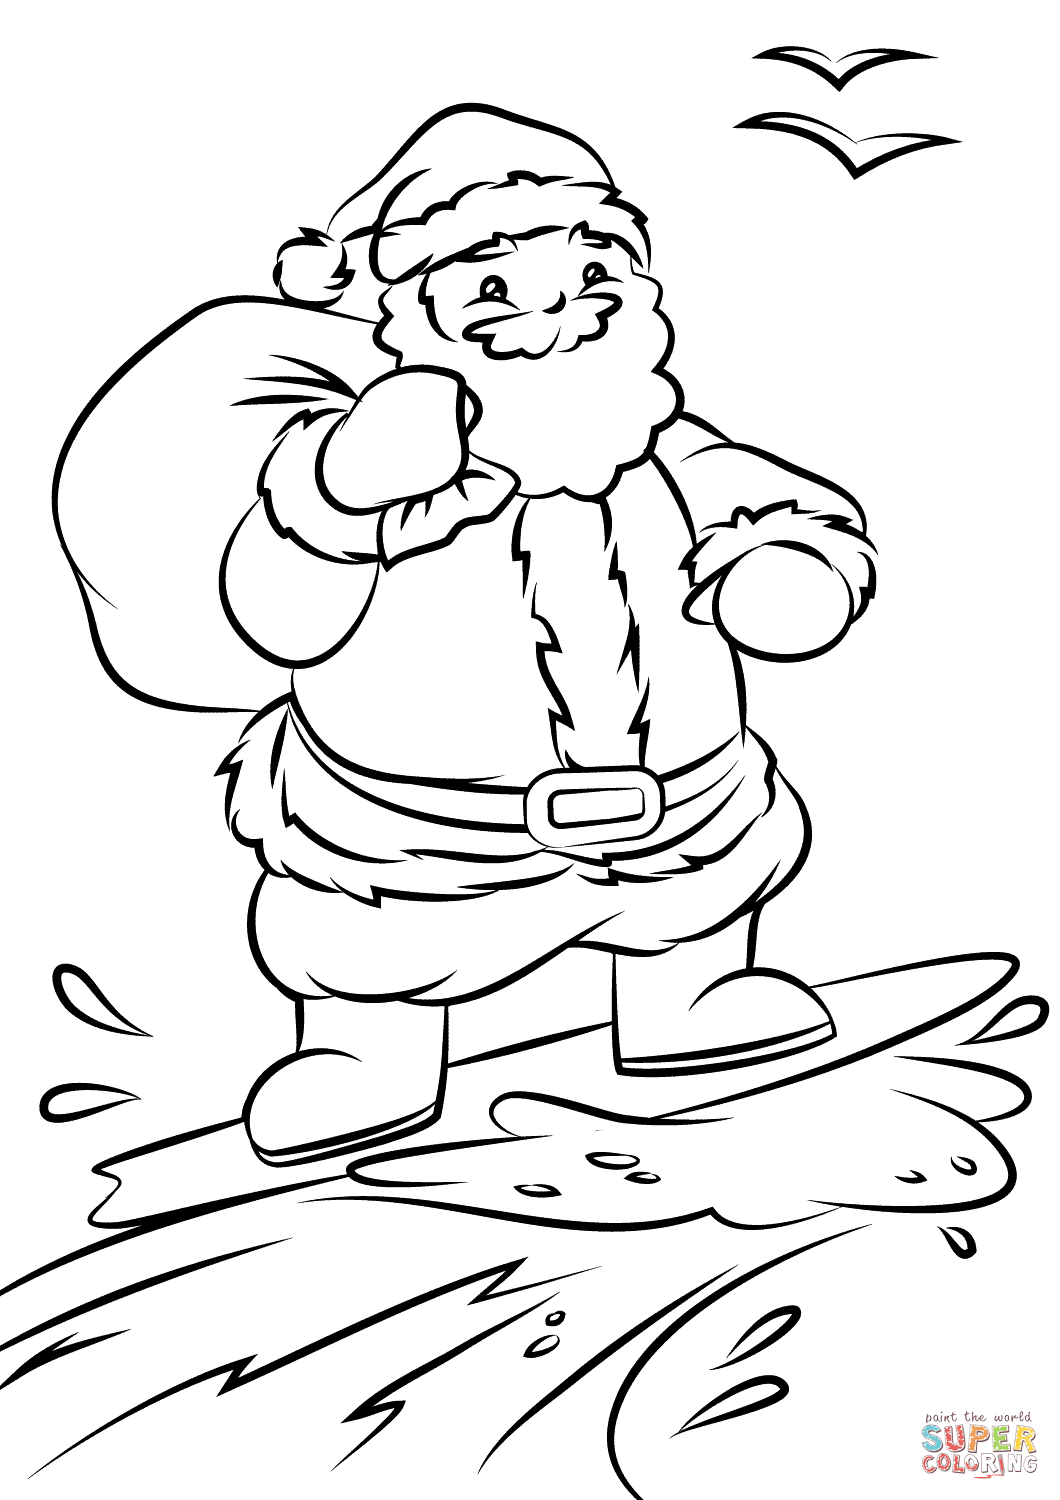 Surf Woody Coloring Page - Worksheet & Coloring Pages